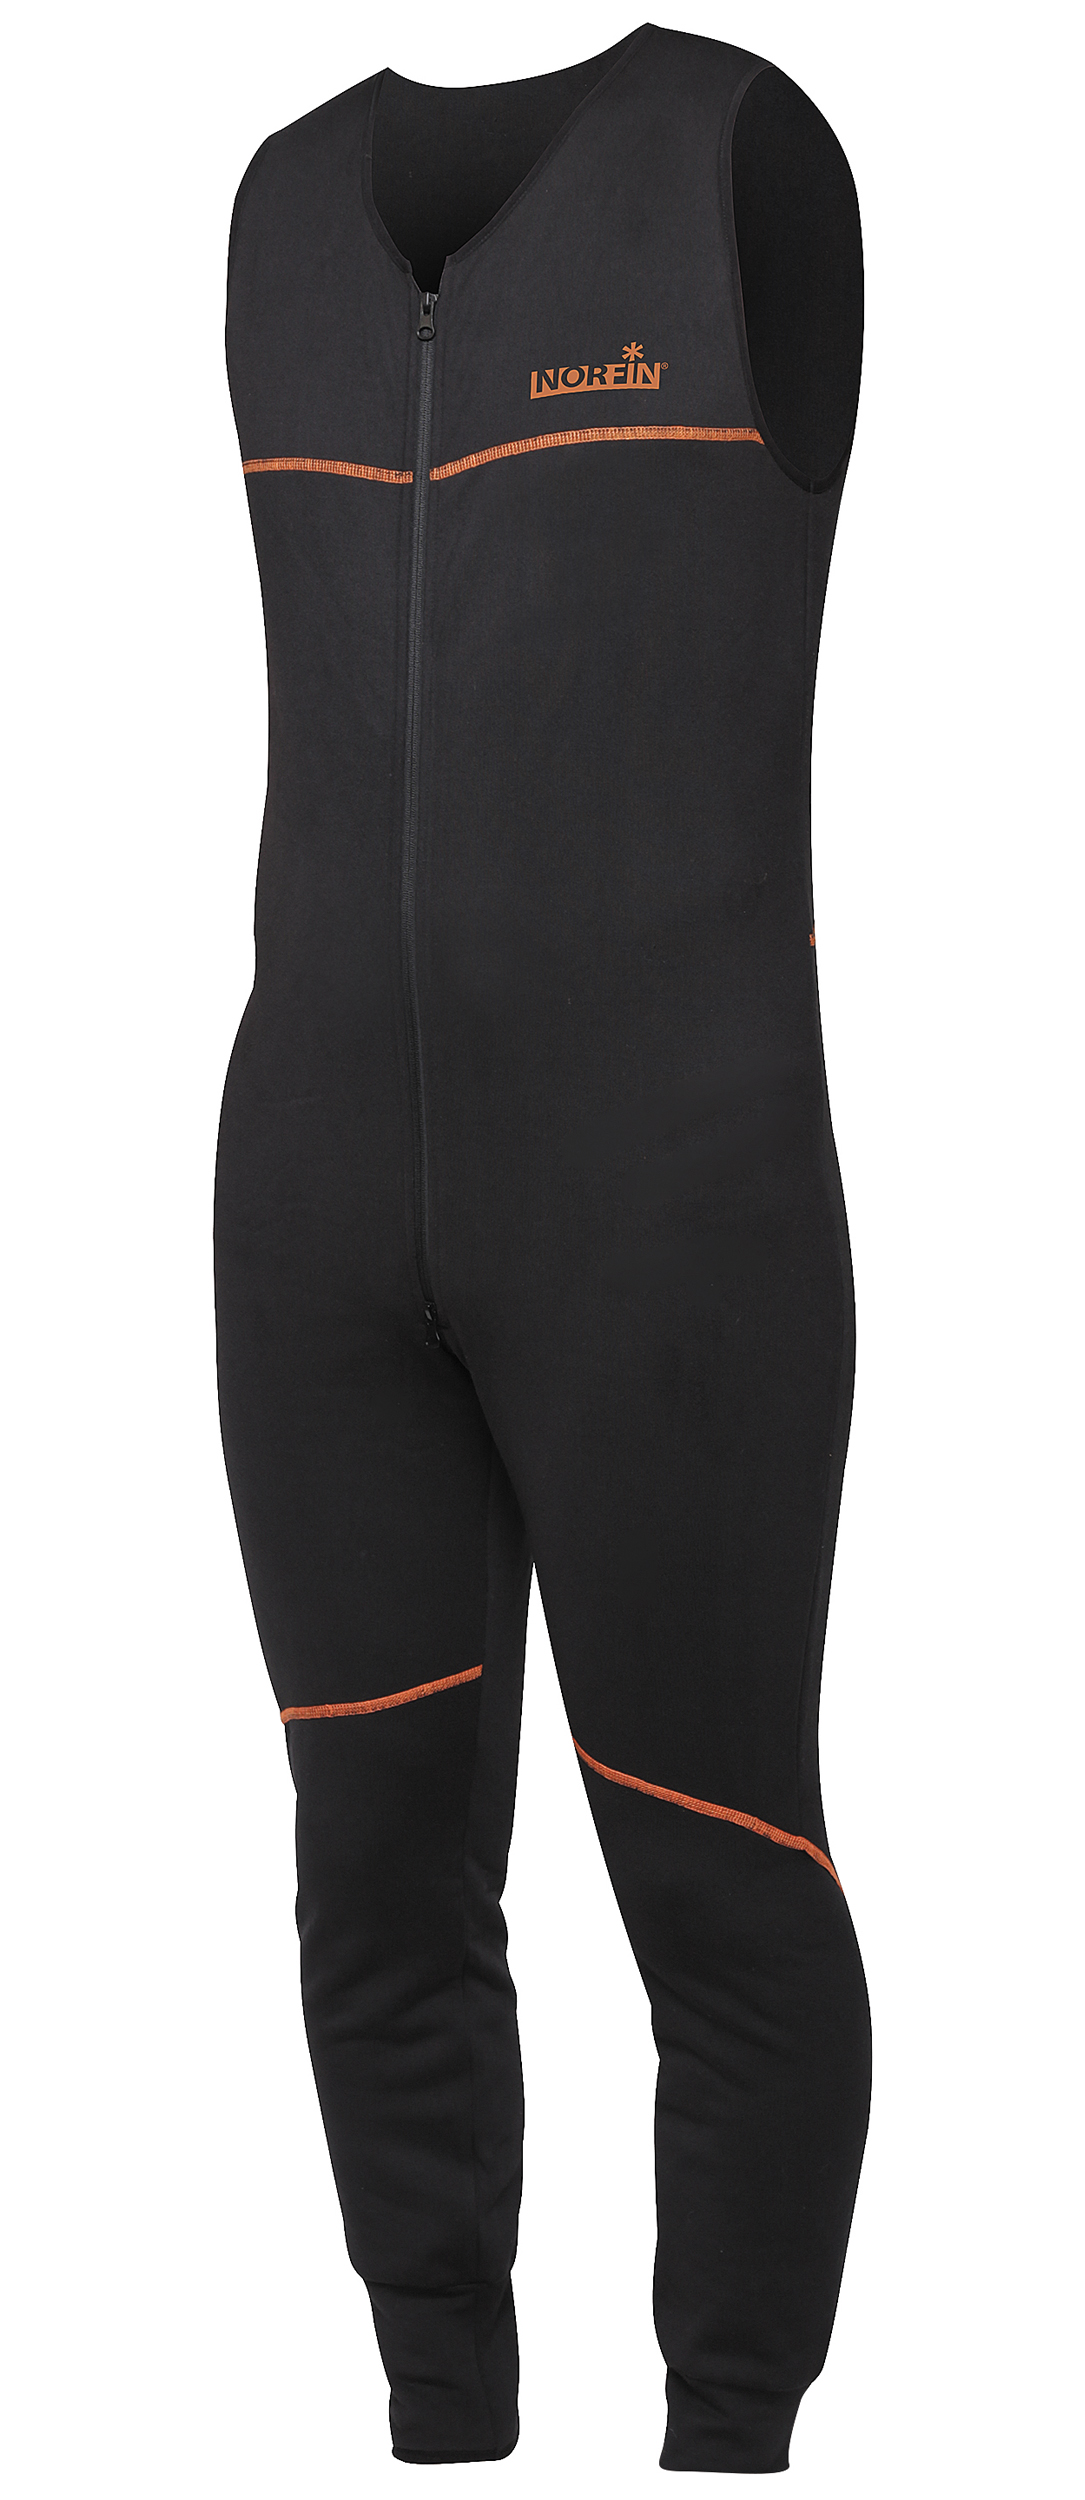 NORFIN Termo oblek - OVERALL thermal underwear - vel. S